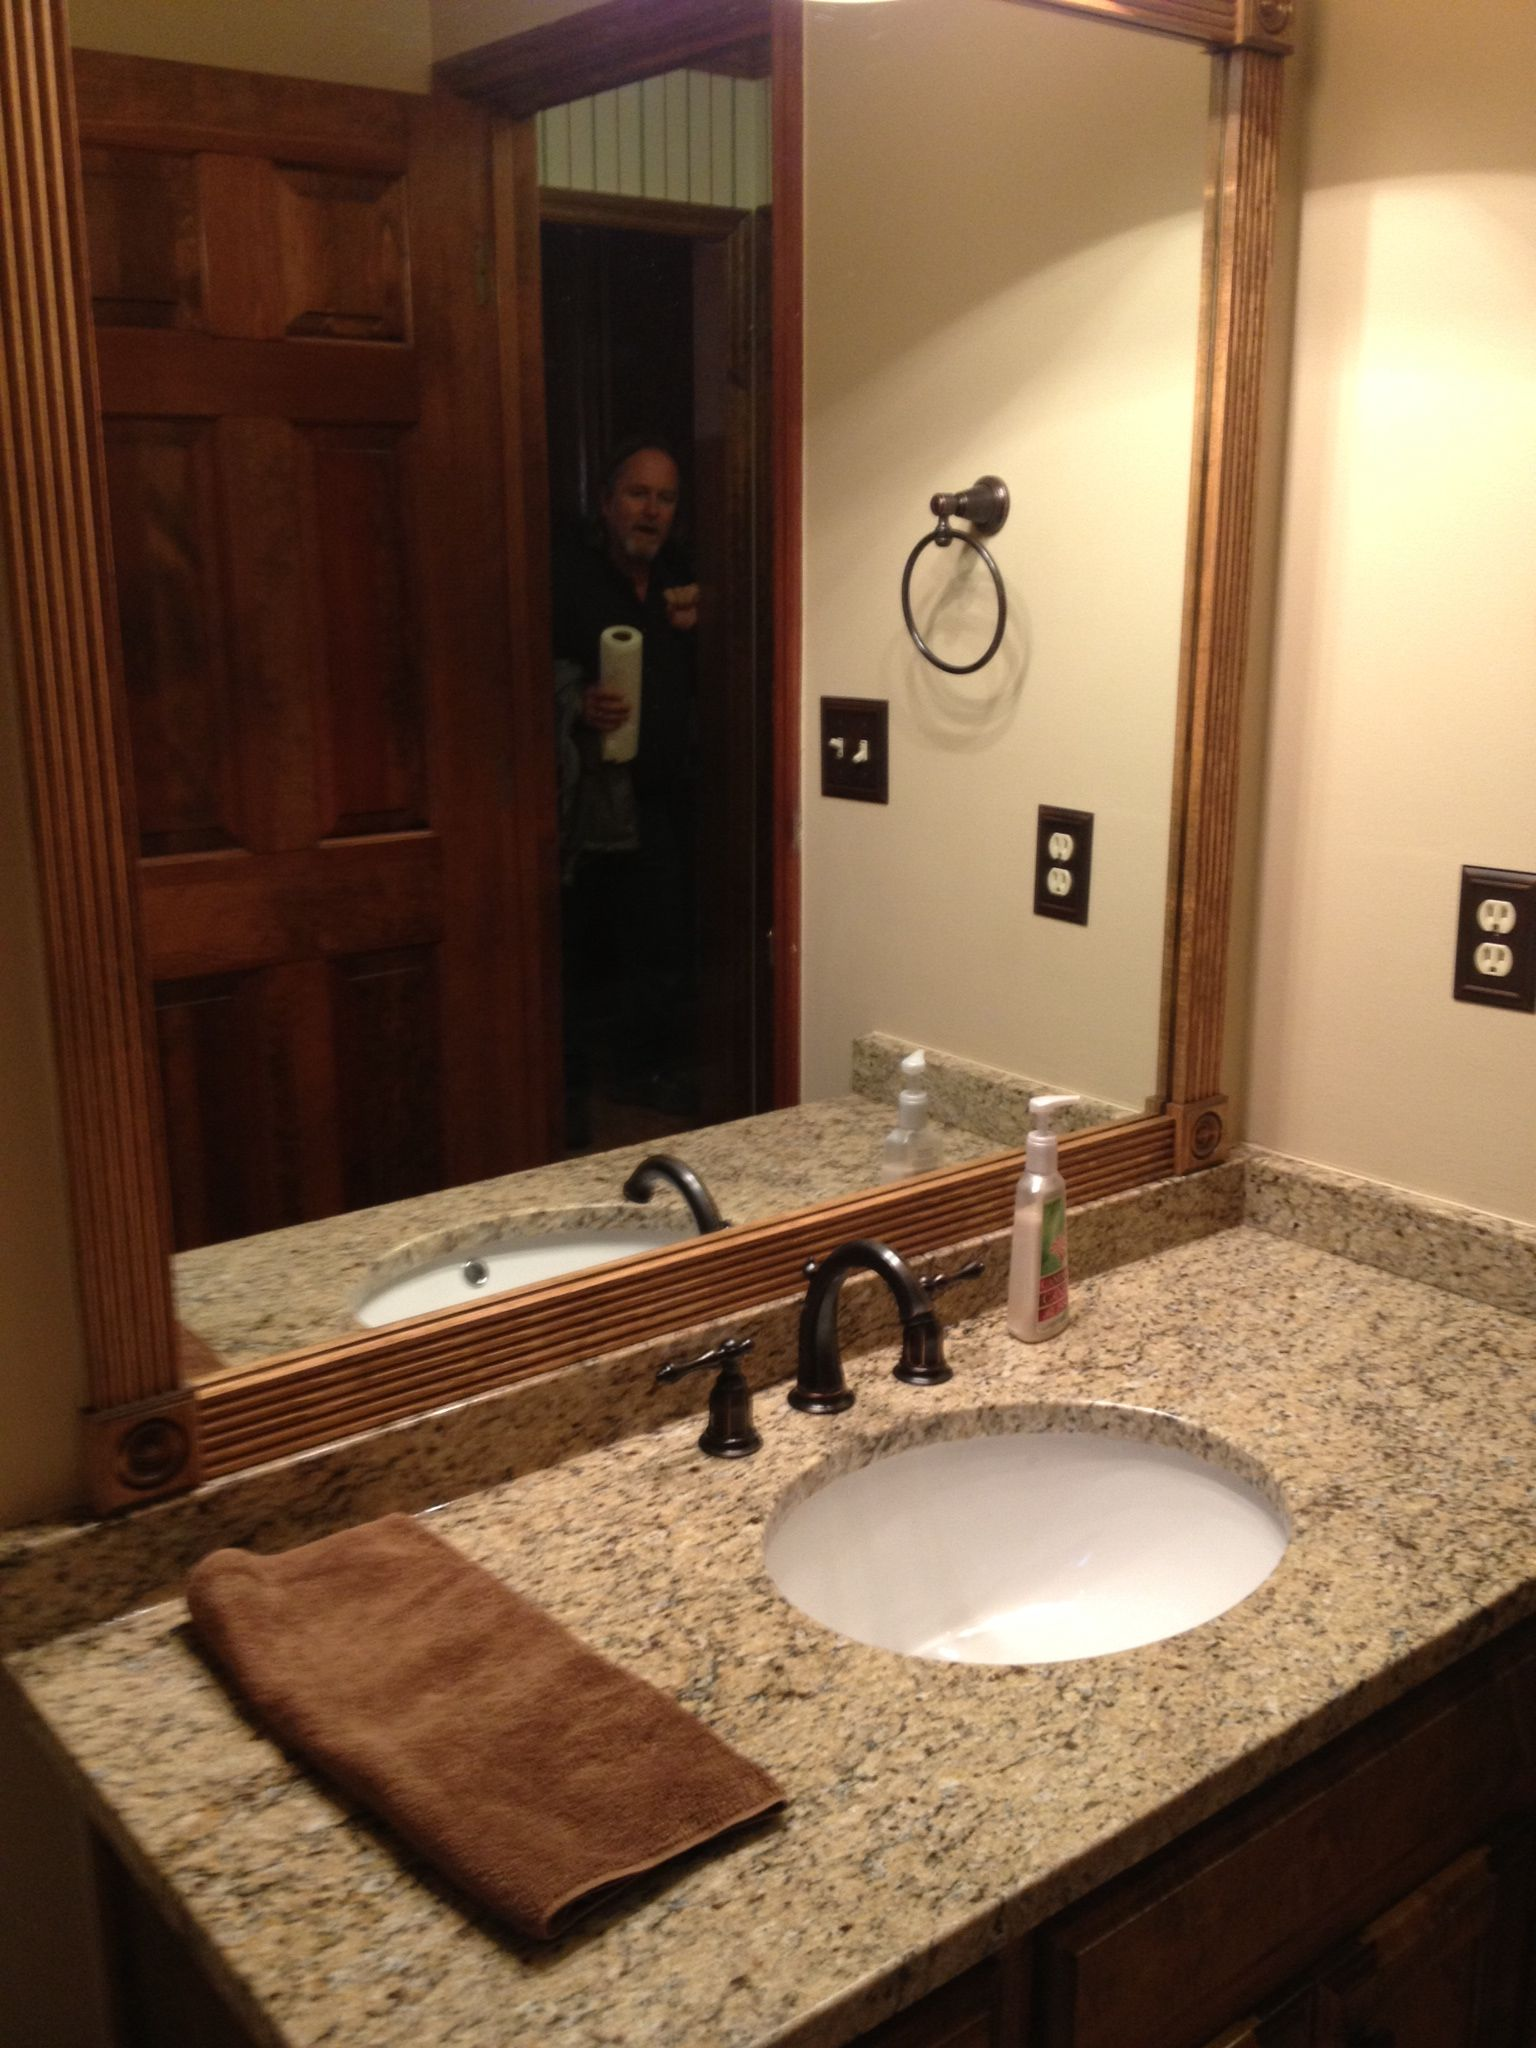 Stone Framed Bathroom Mirrors Completed Bathroom Remodel New Vanity And Granite